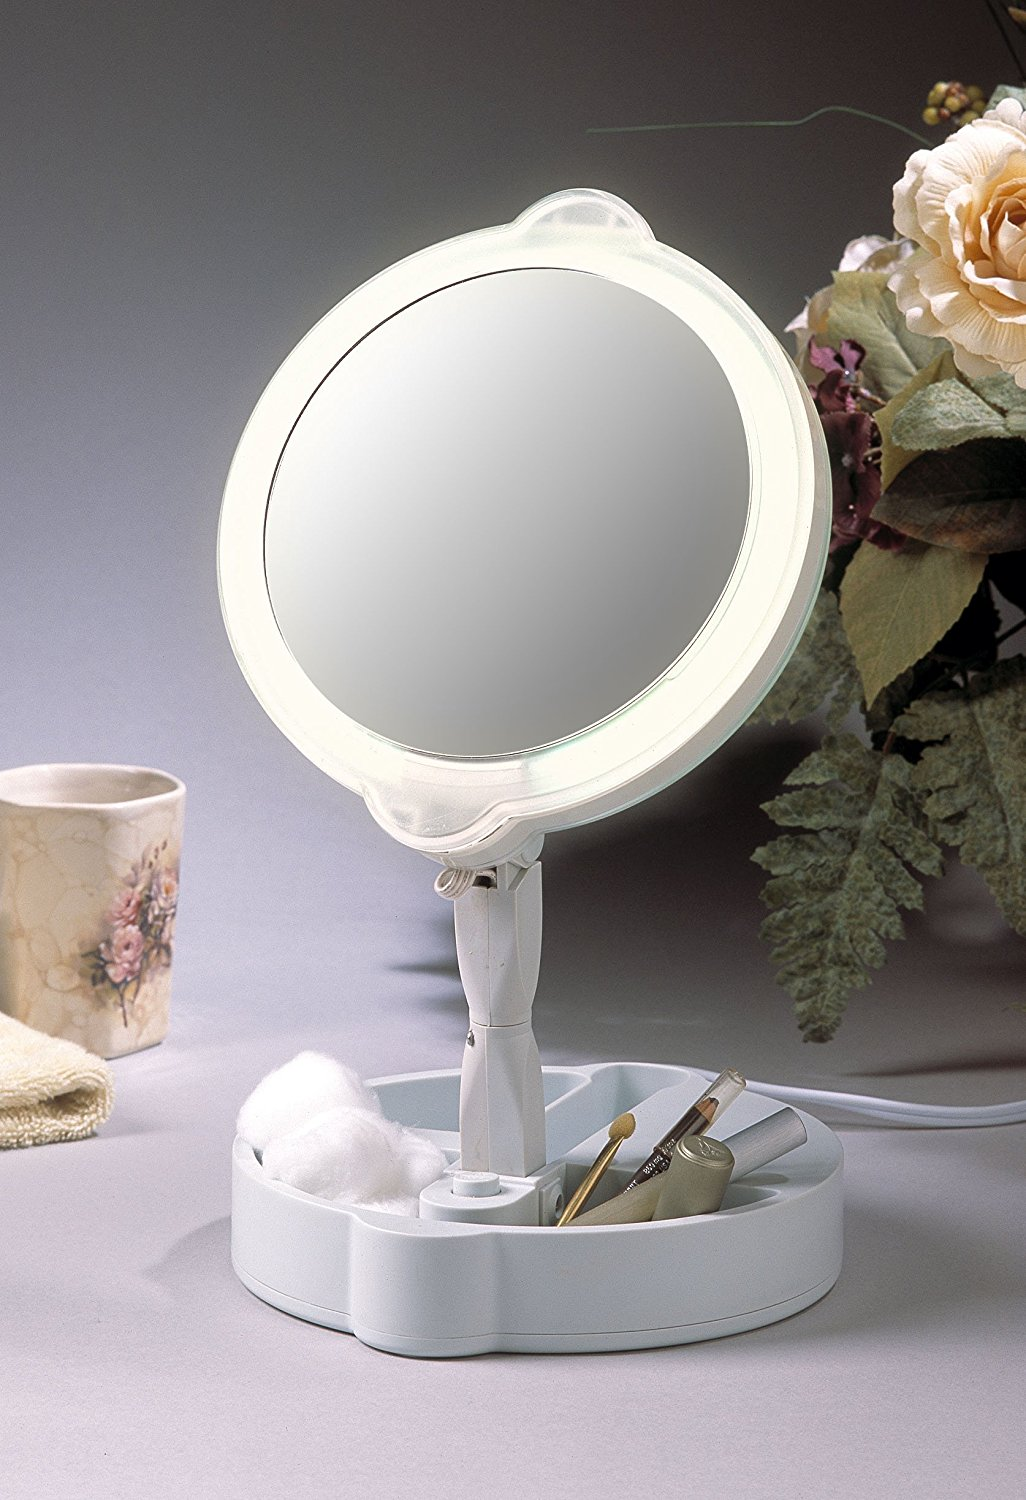 Home travel 9x 1x folding lighted cosmetic mirror 1